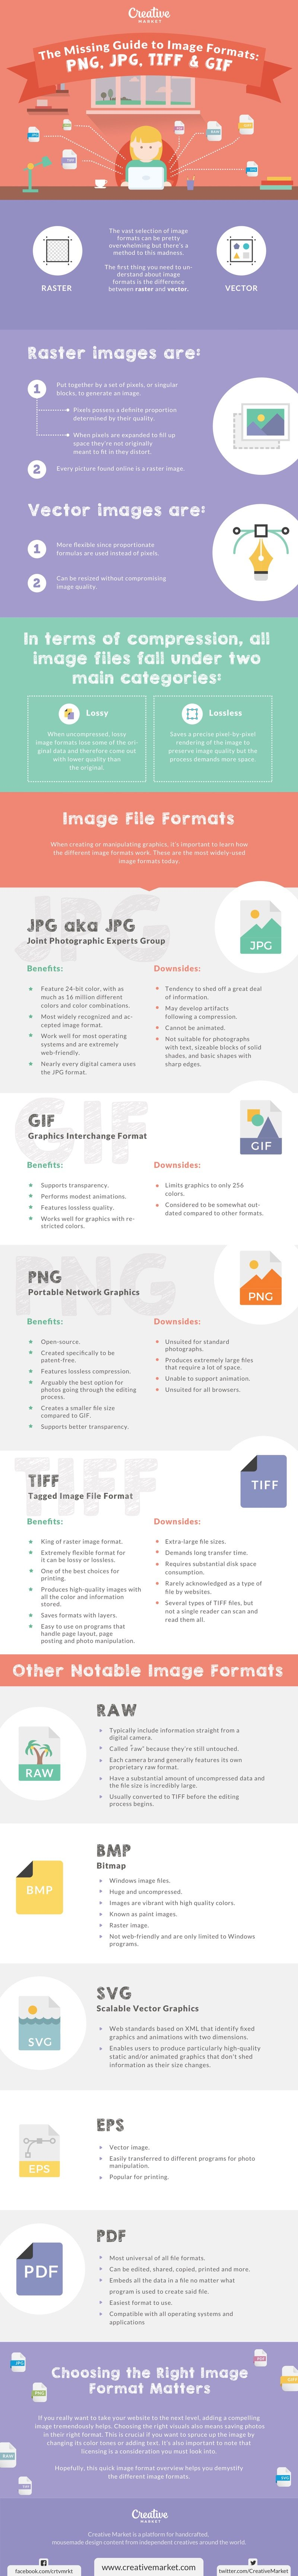 Ultimate guide to graphic image file formats